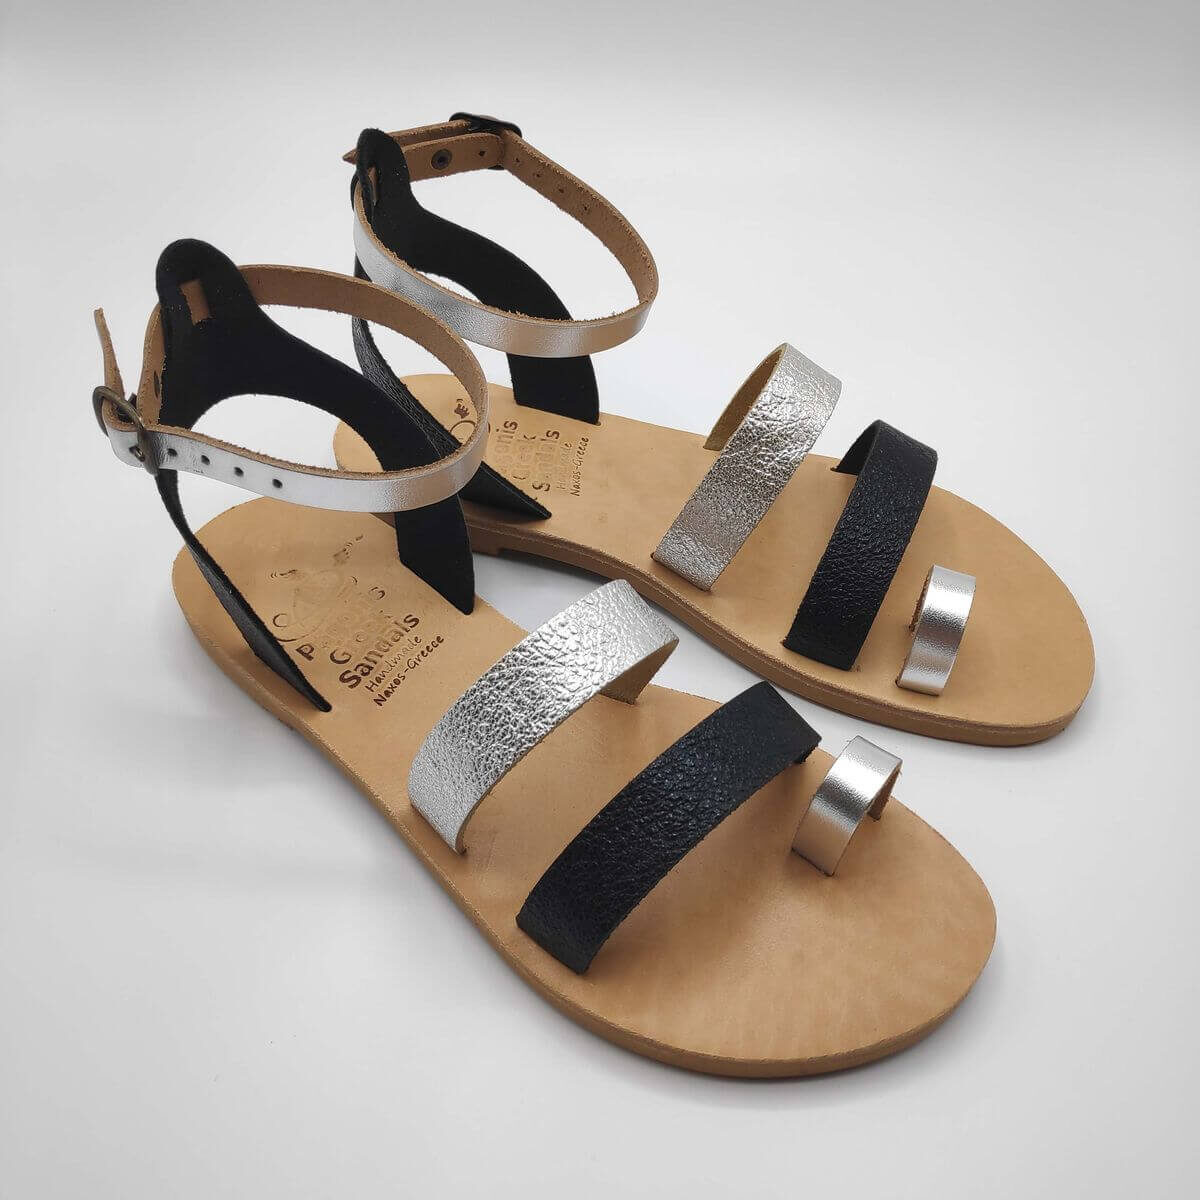 Black Silver leather dressy sandals with two straps, toe ring and high ankle strap, side view